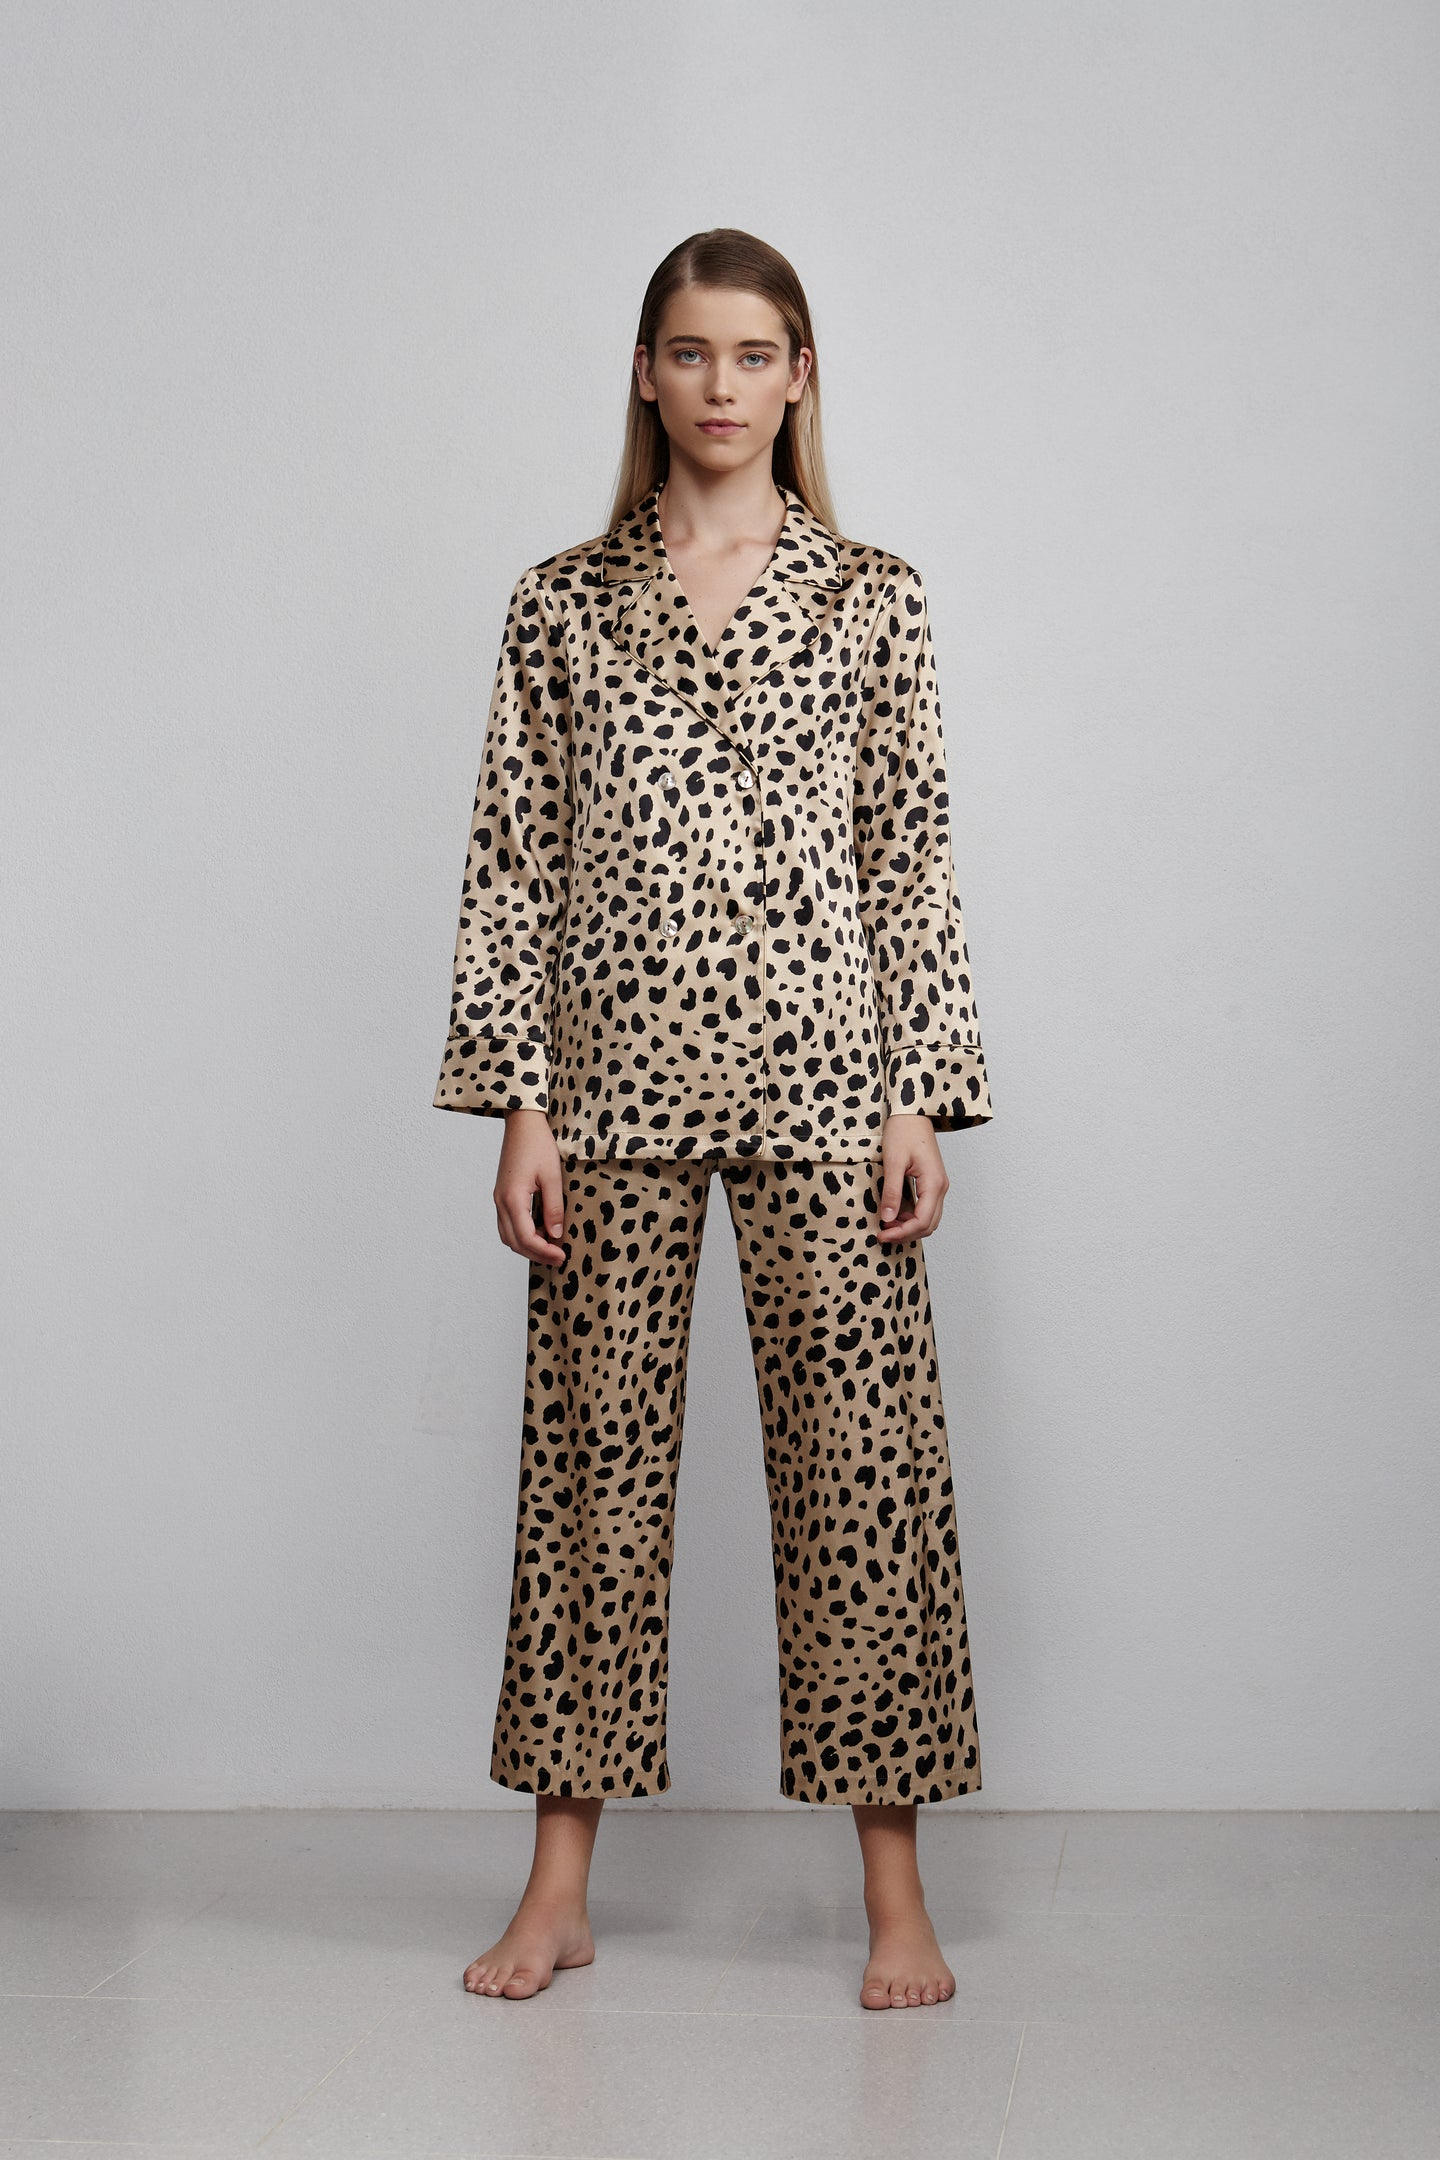 Elastic waist cropped pull on pant, Leopard print, front view